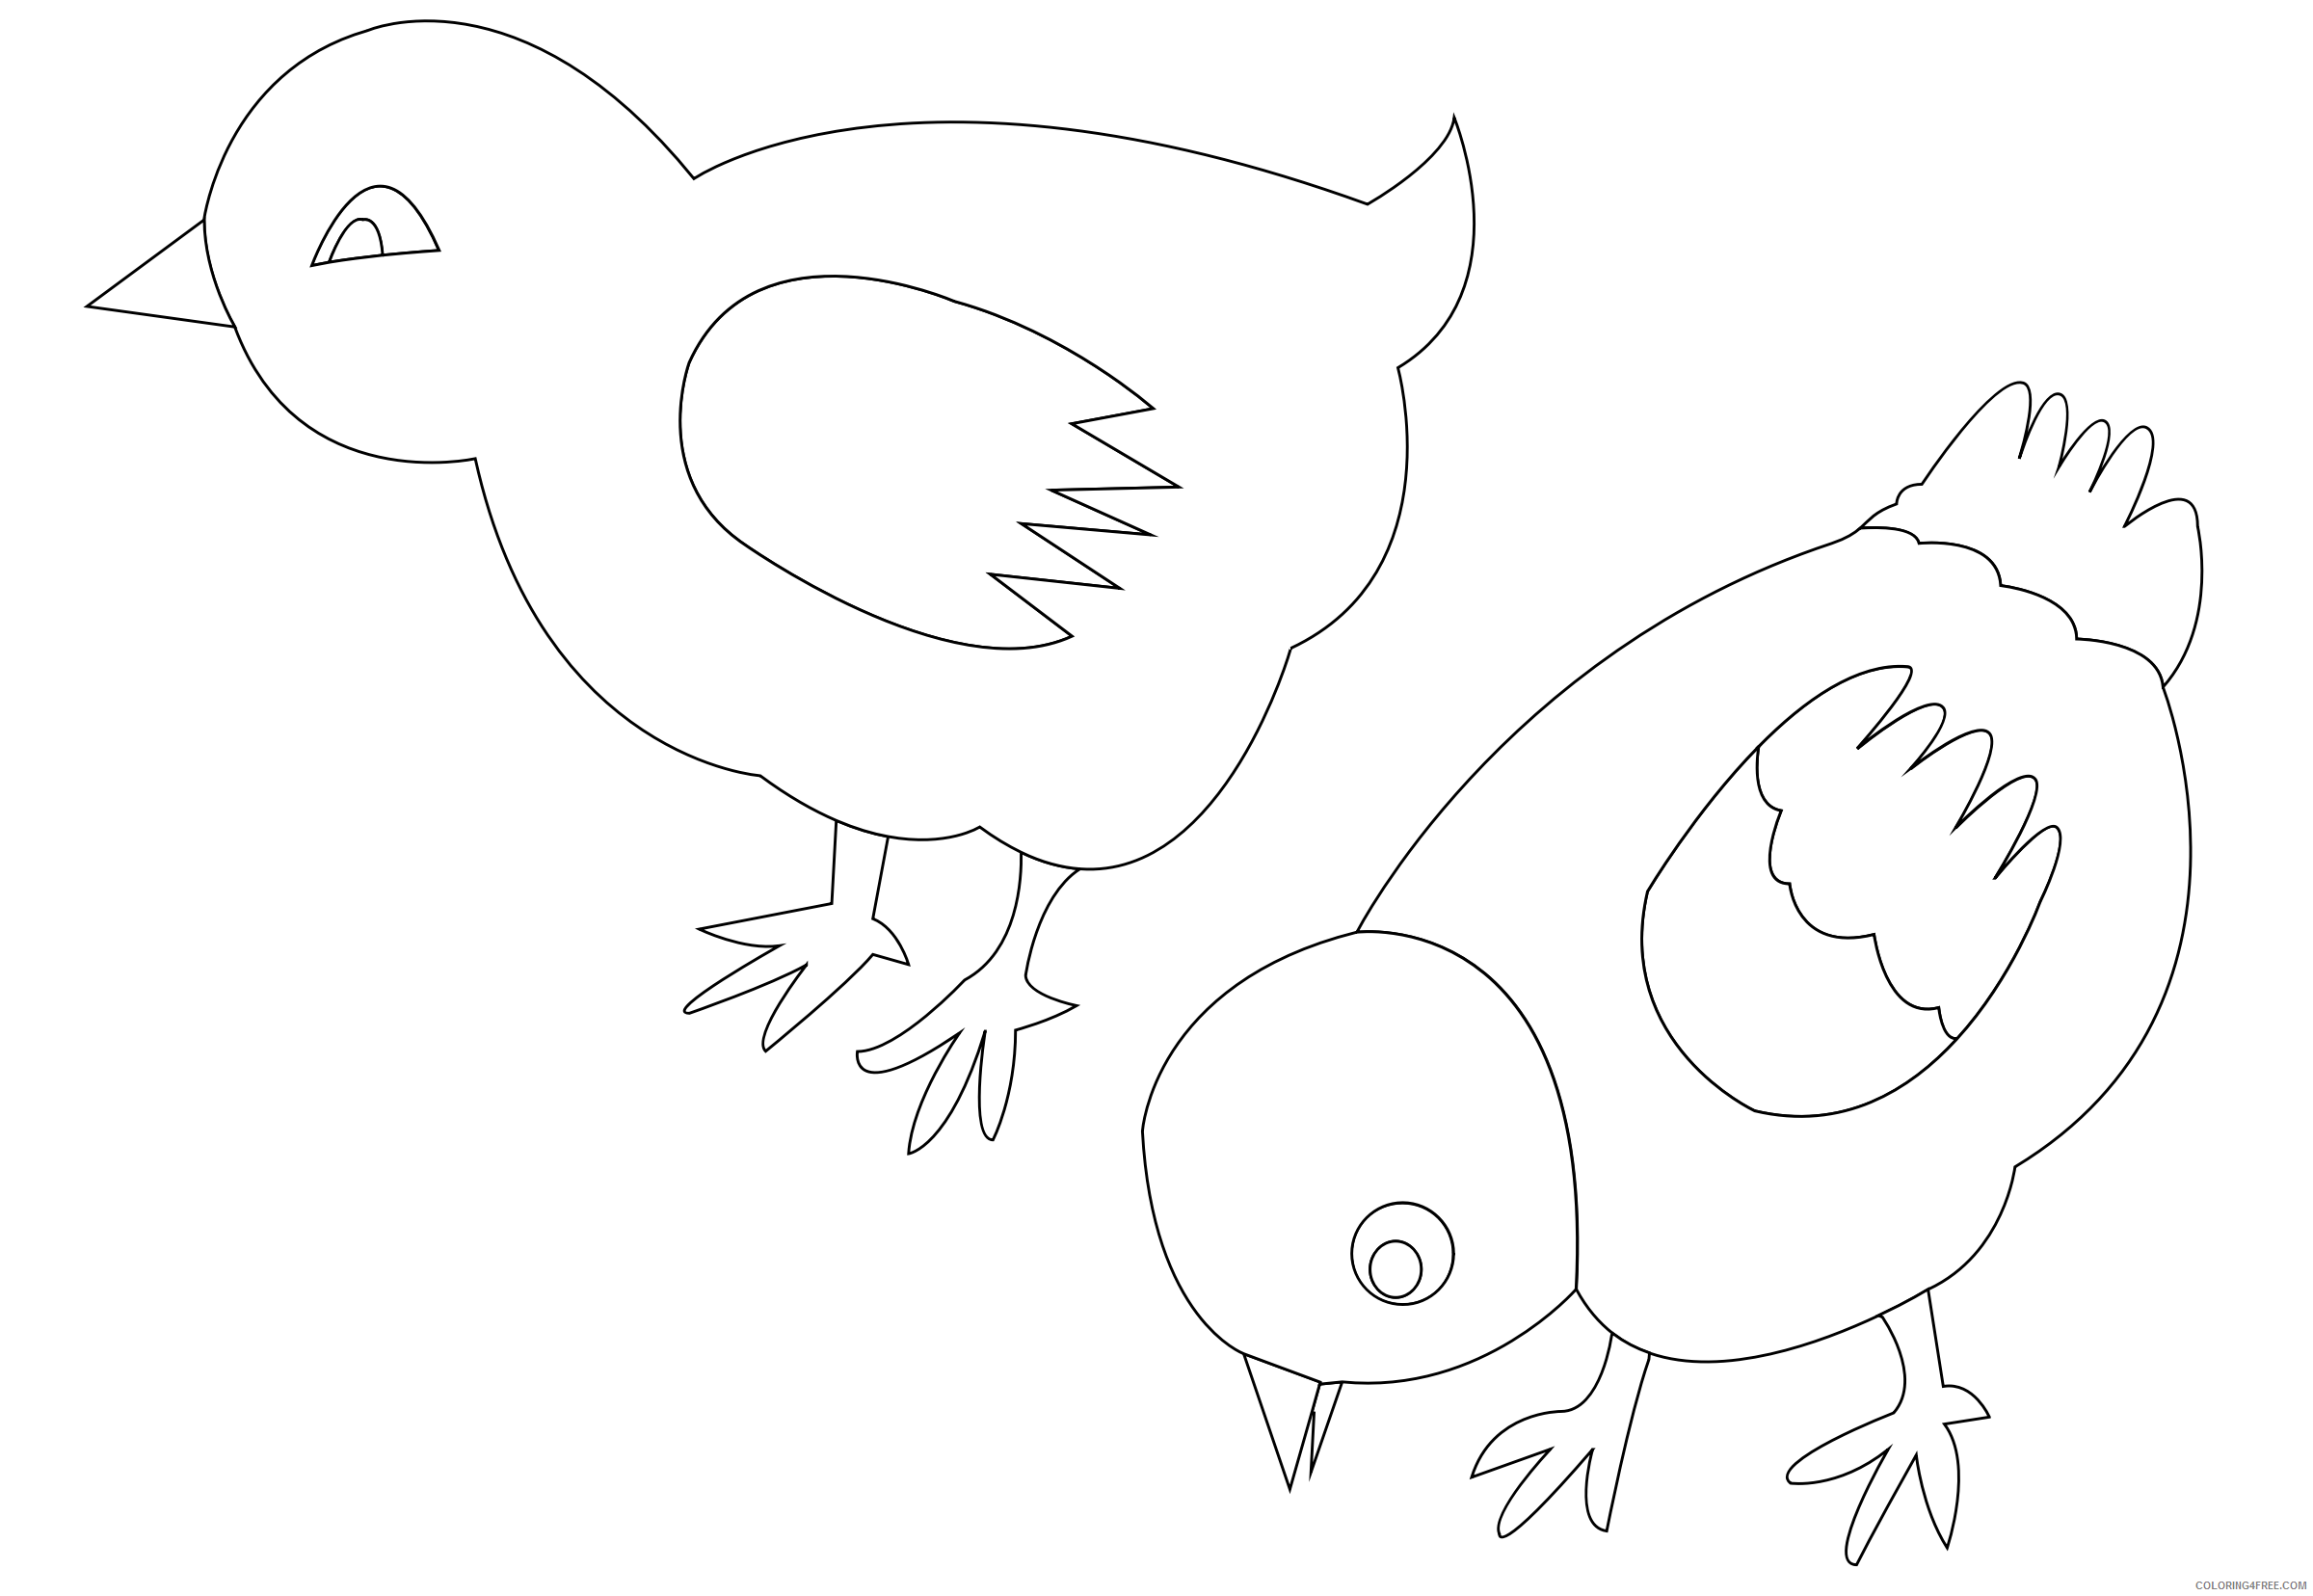 Black and White Chicken Coloring Pages chickens 002 vector Printable Coloring4free